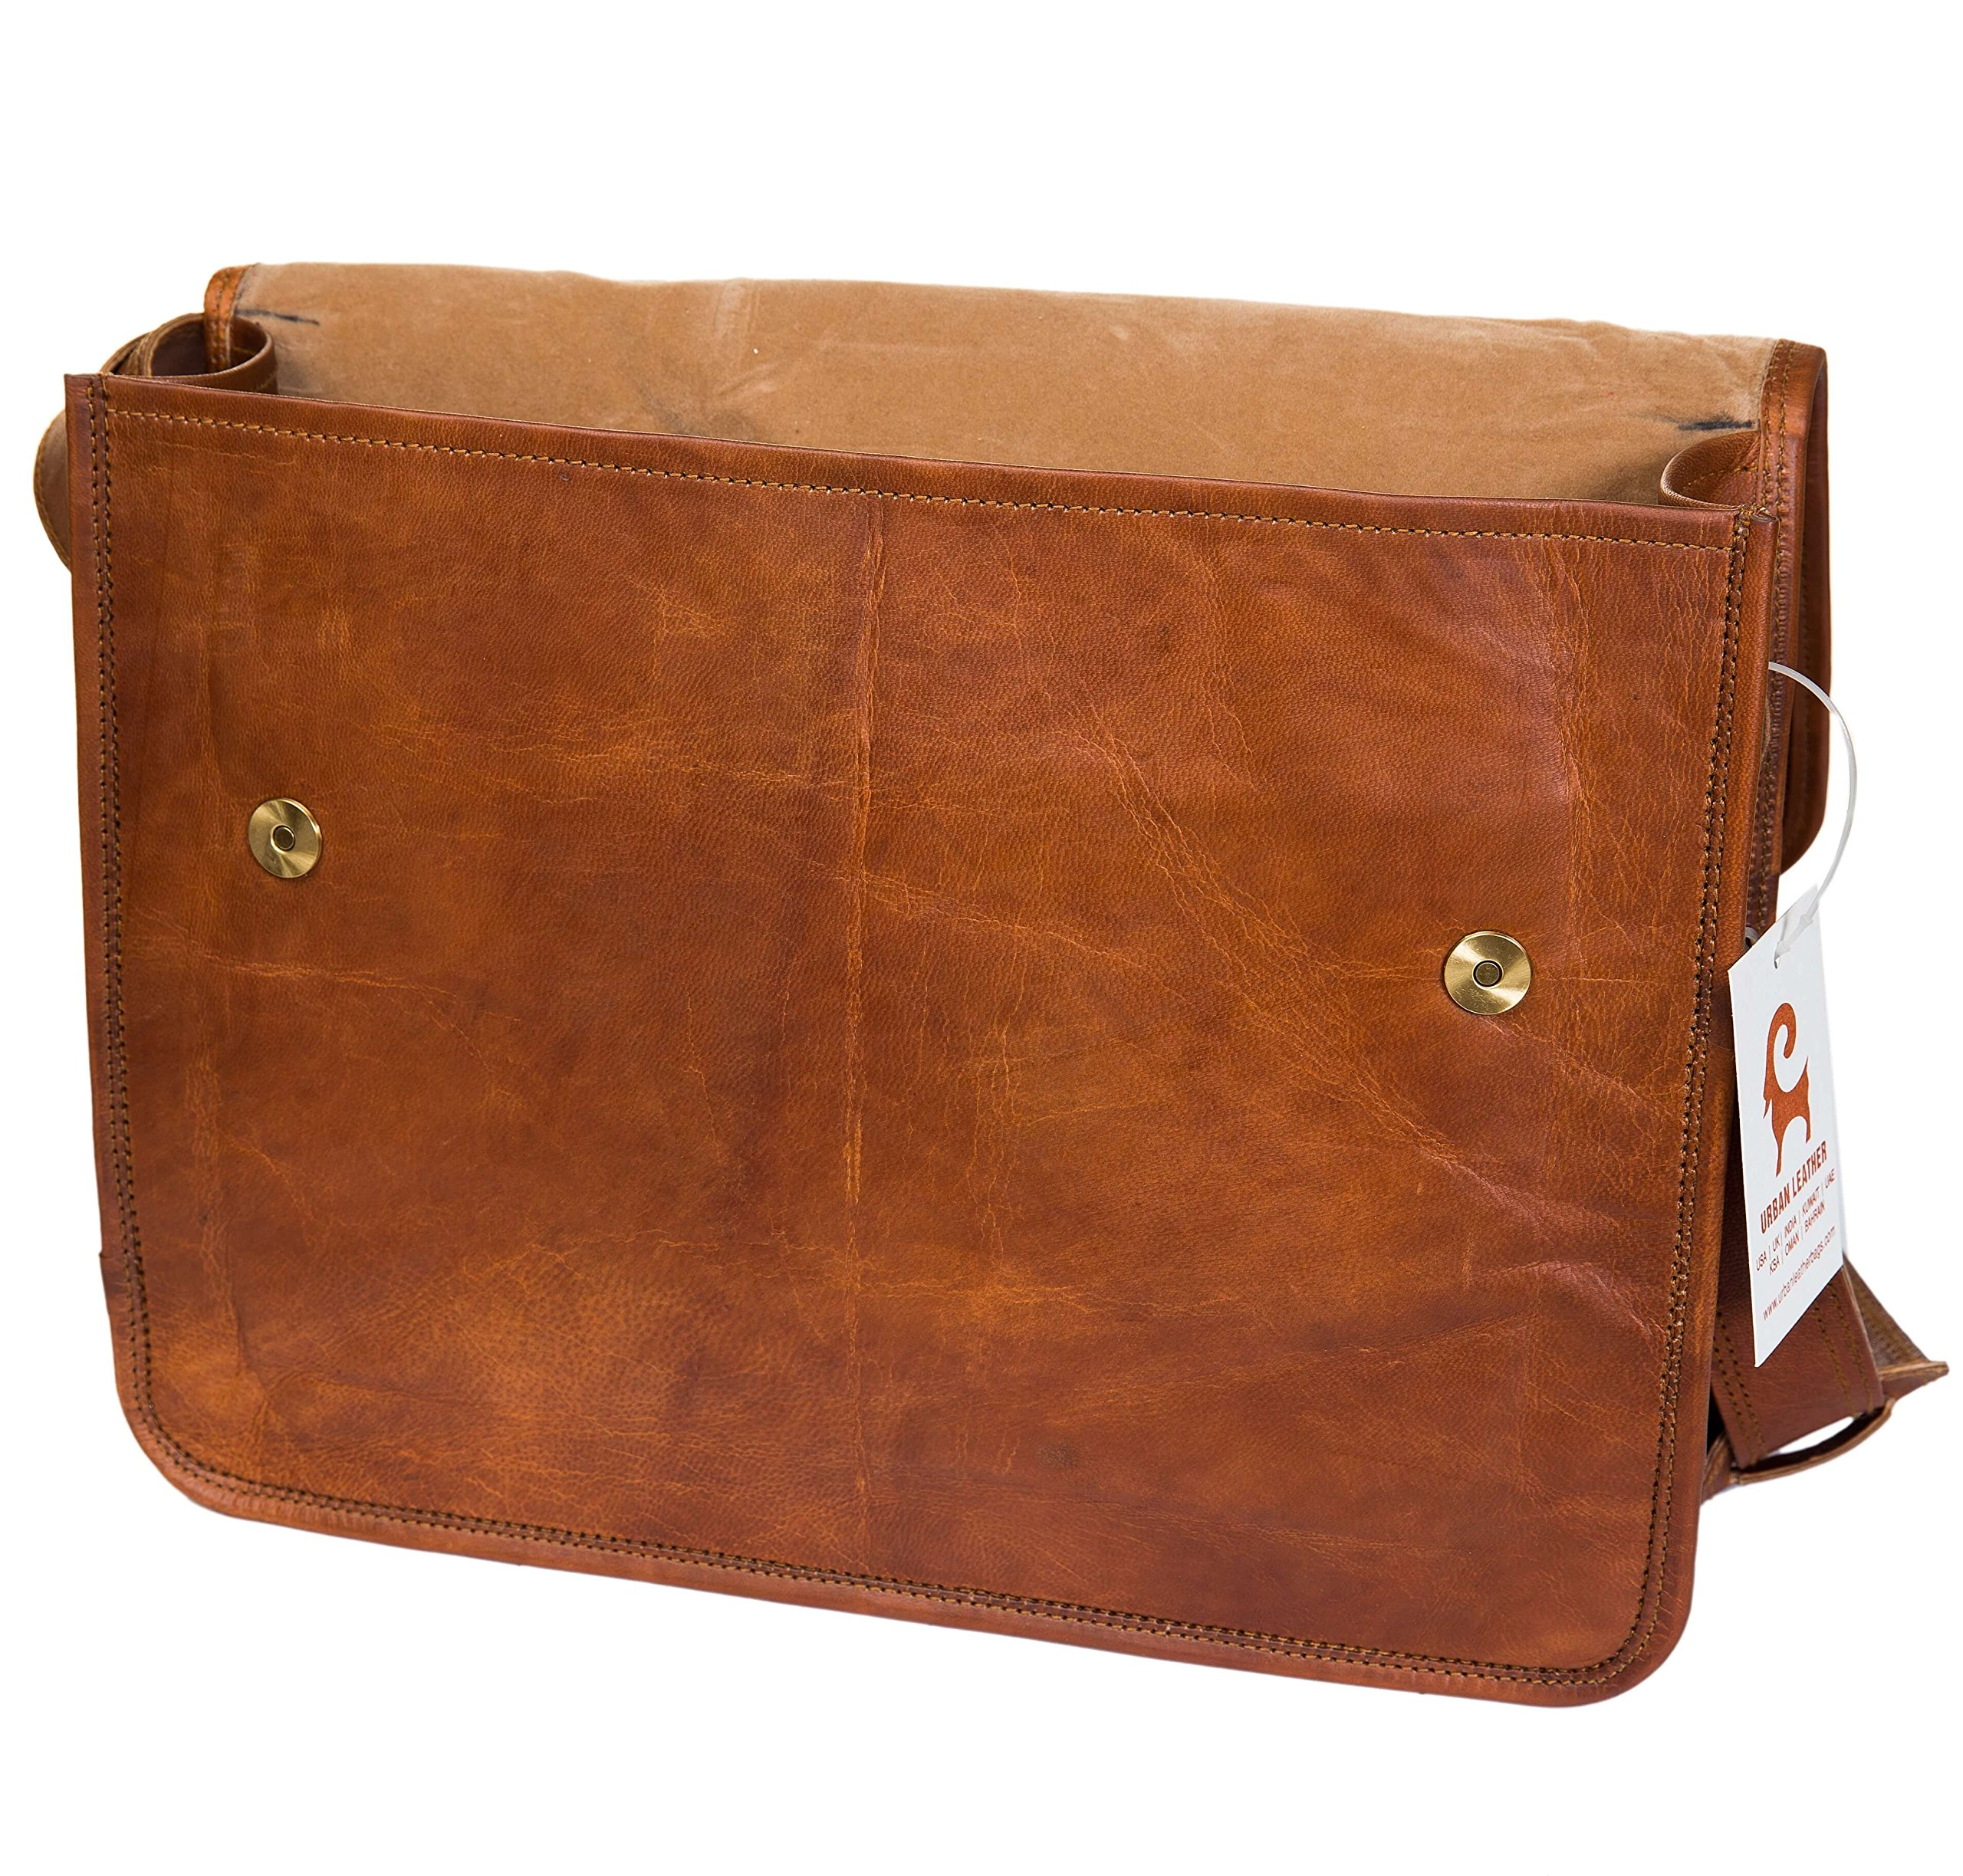 Urban Leather Handmade Laptop Messenger Bag for Men Women Flap Over Office Leather Shoulder Work Bag with Shock Proof MacBook Padding with Natural Textures